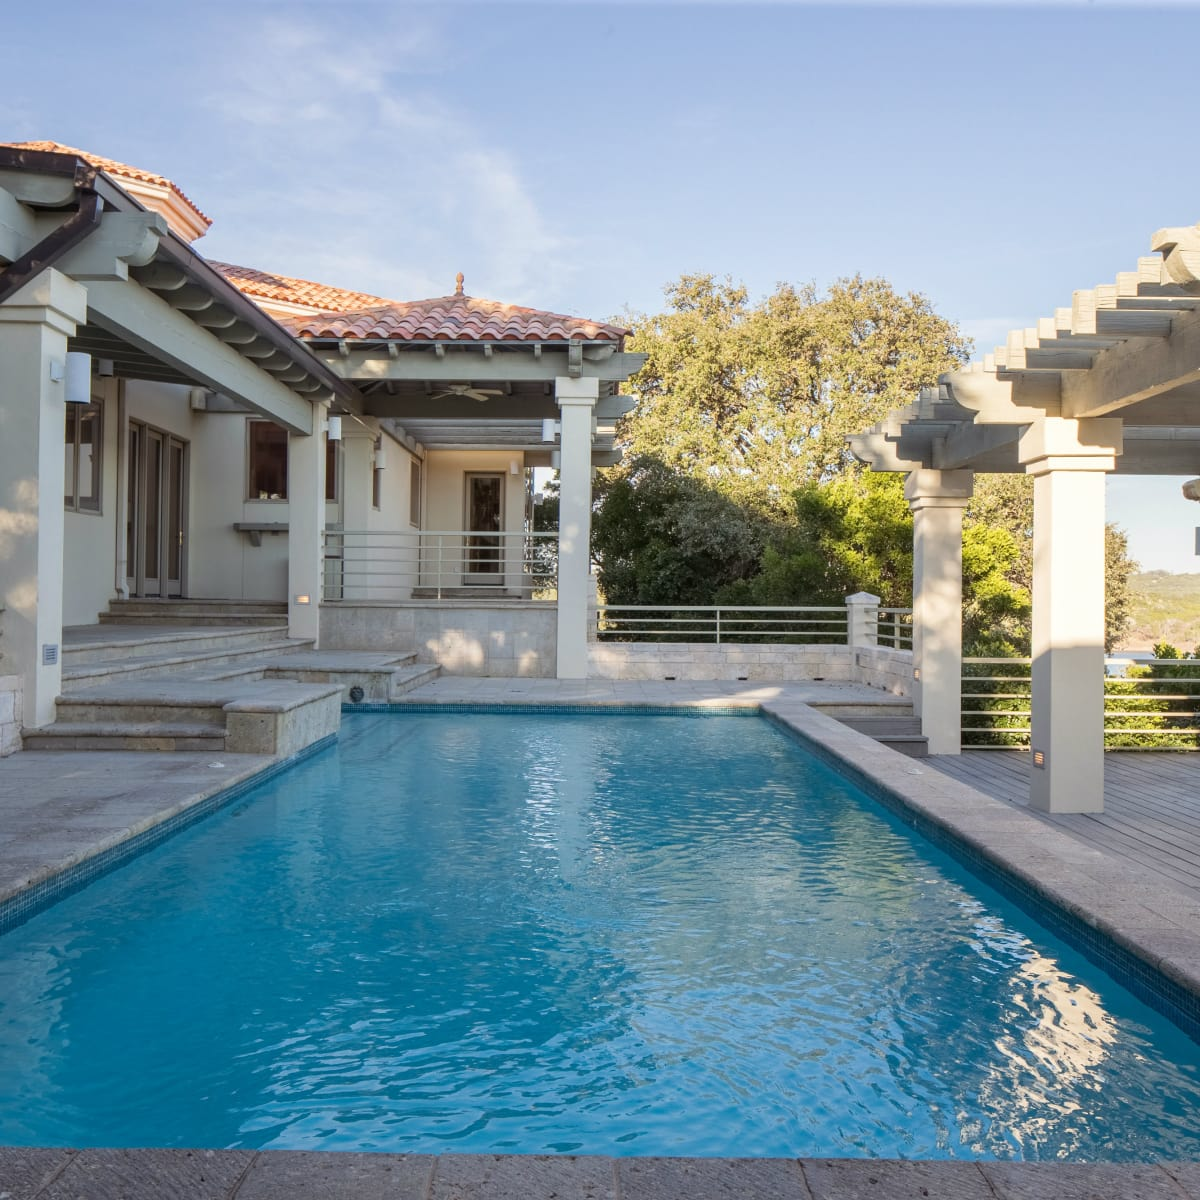 26100 Countryside Austin house for sale pool